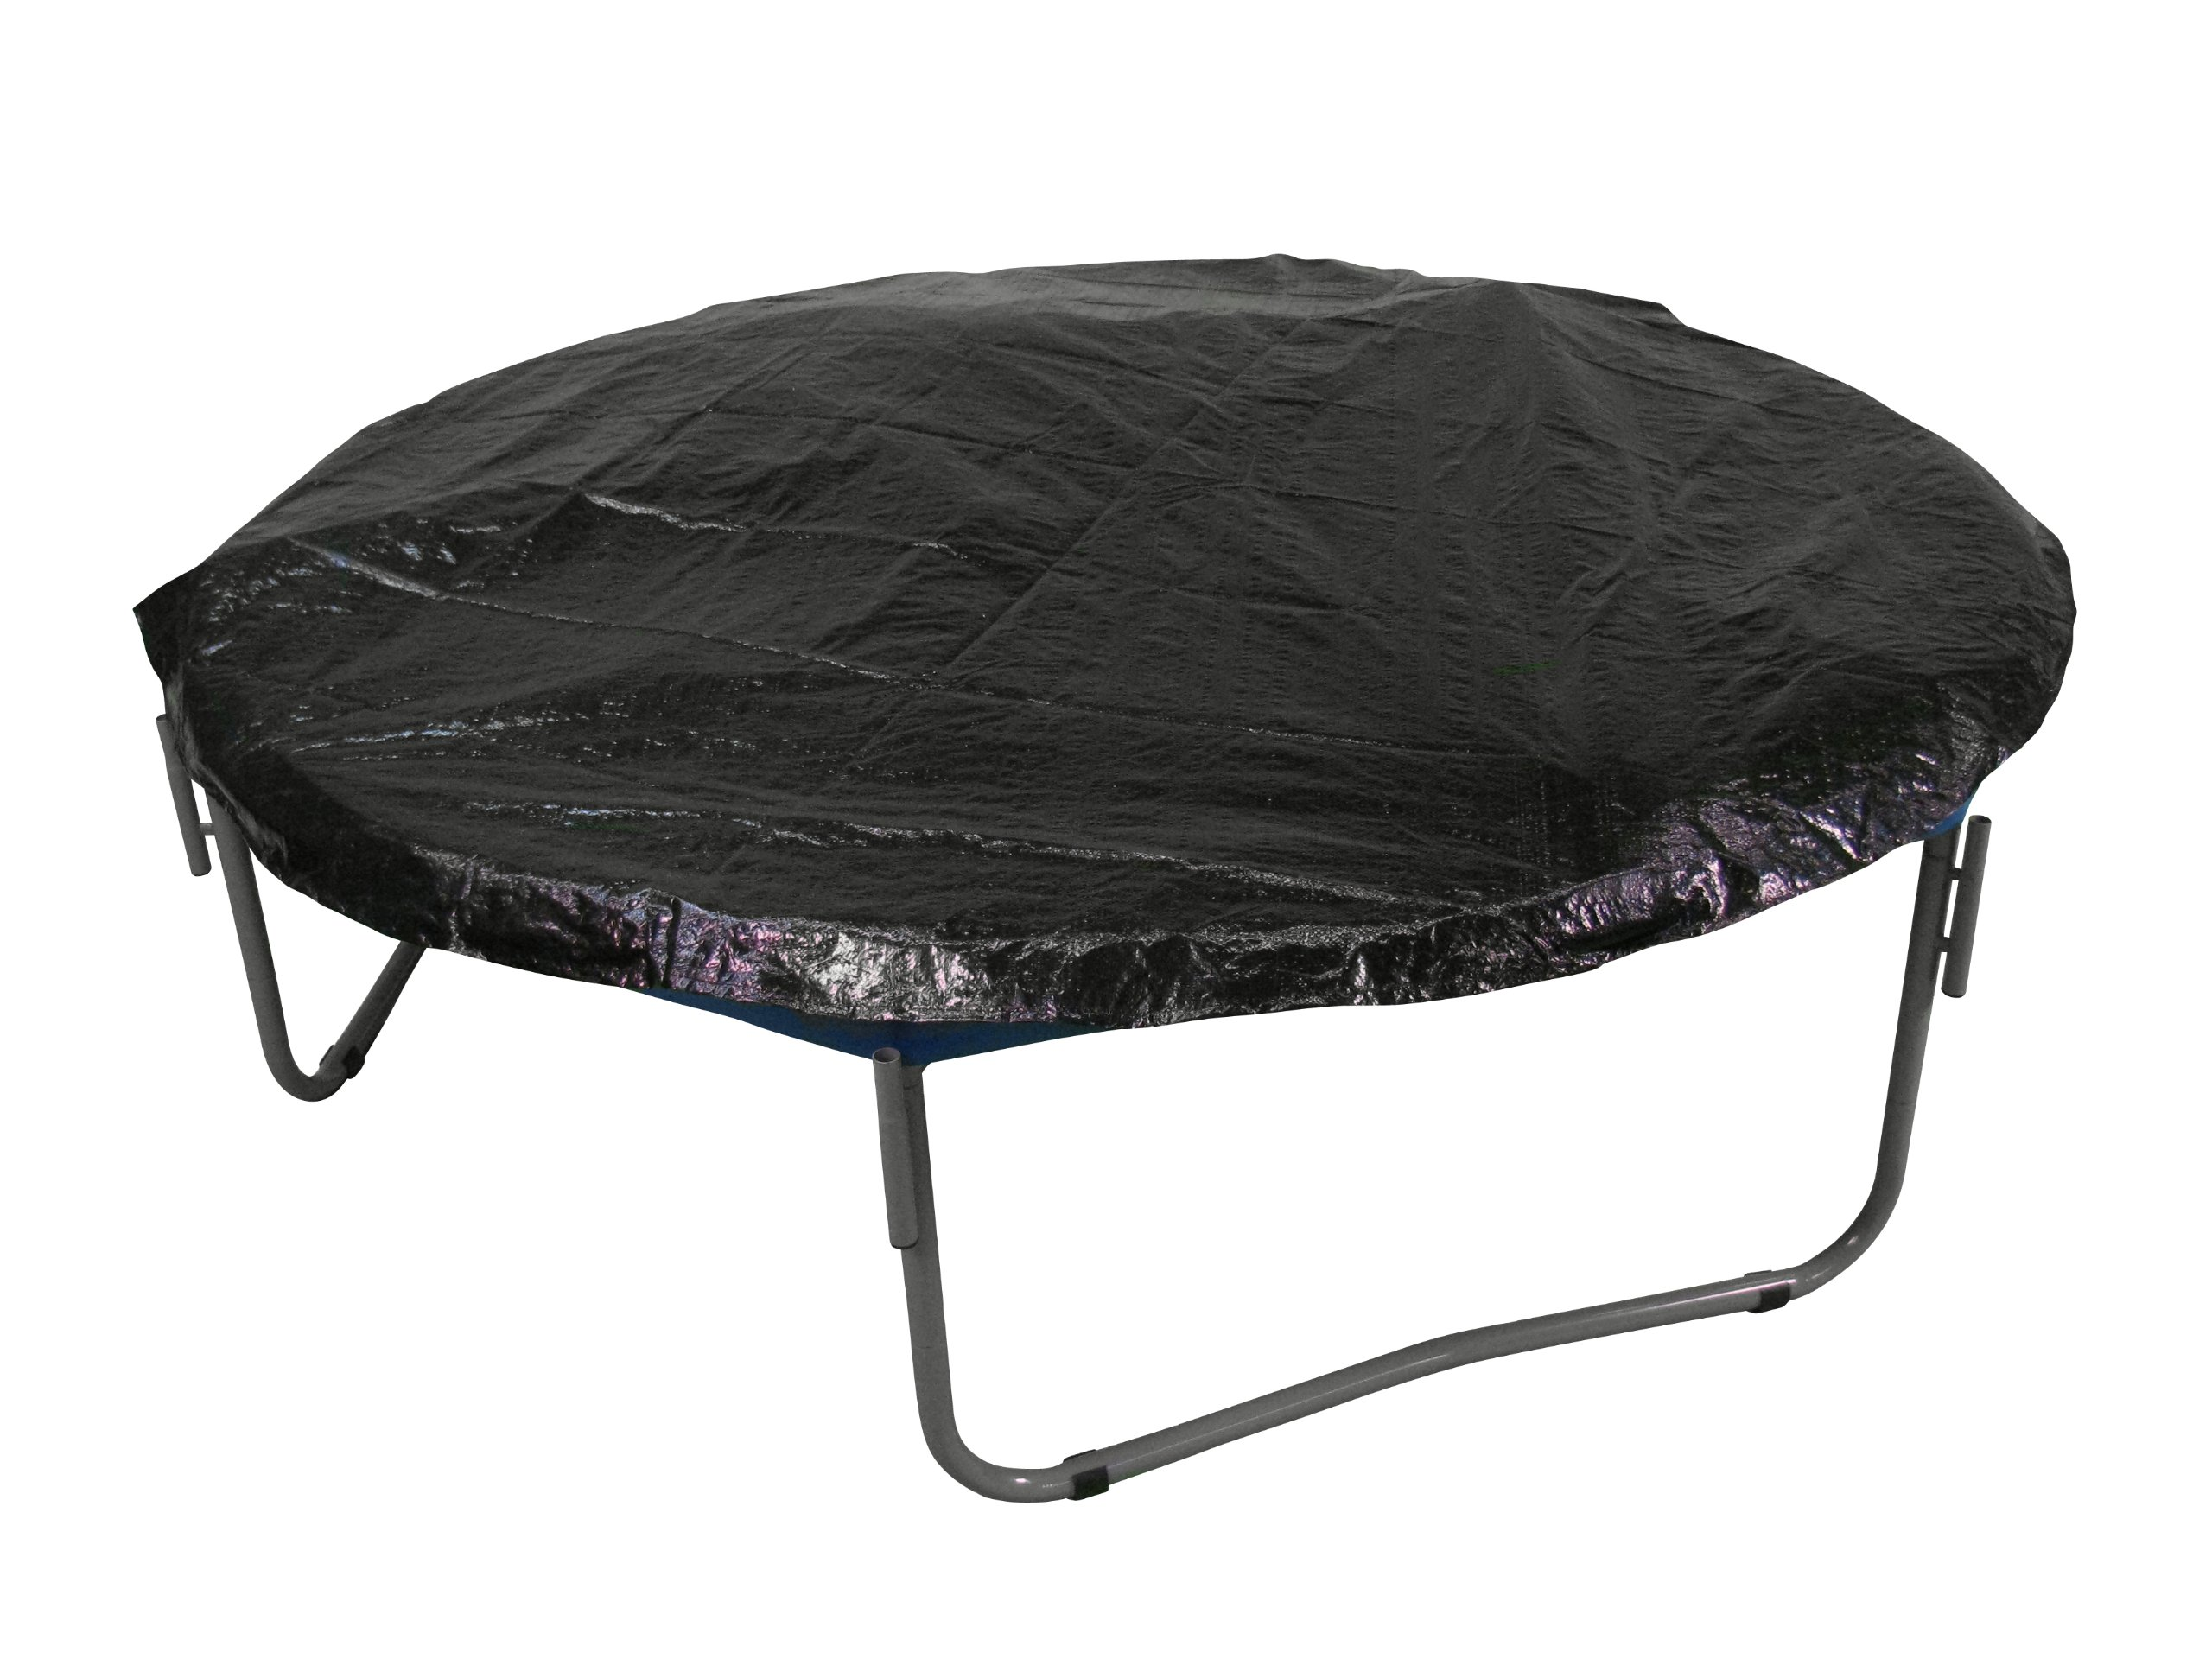 Upper Bounce Economy Trampoline Weather Protection Cover, Fits for Jumpking Model # JP1414C  - Black